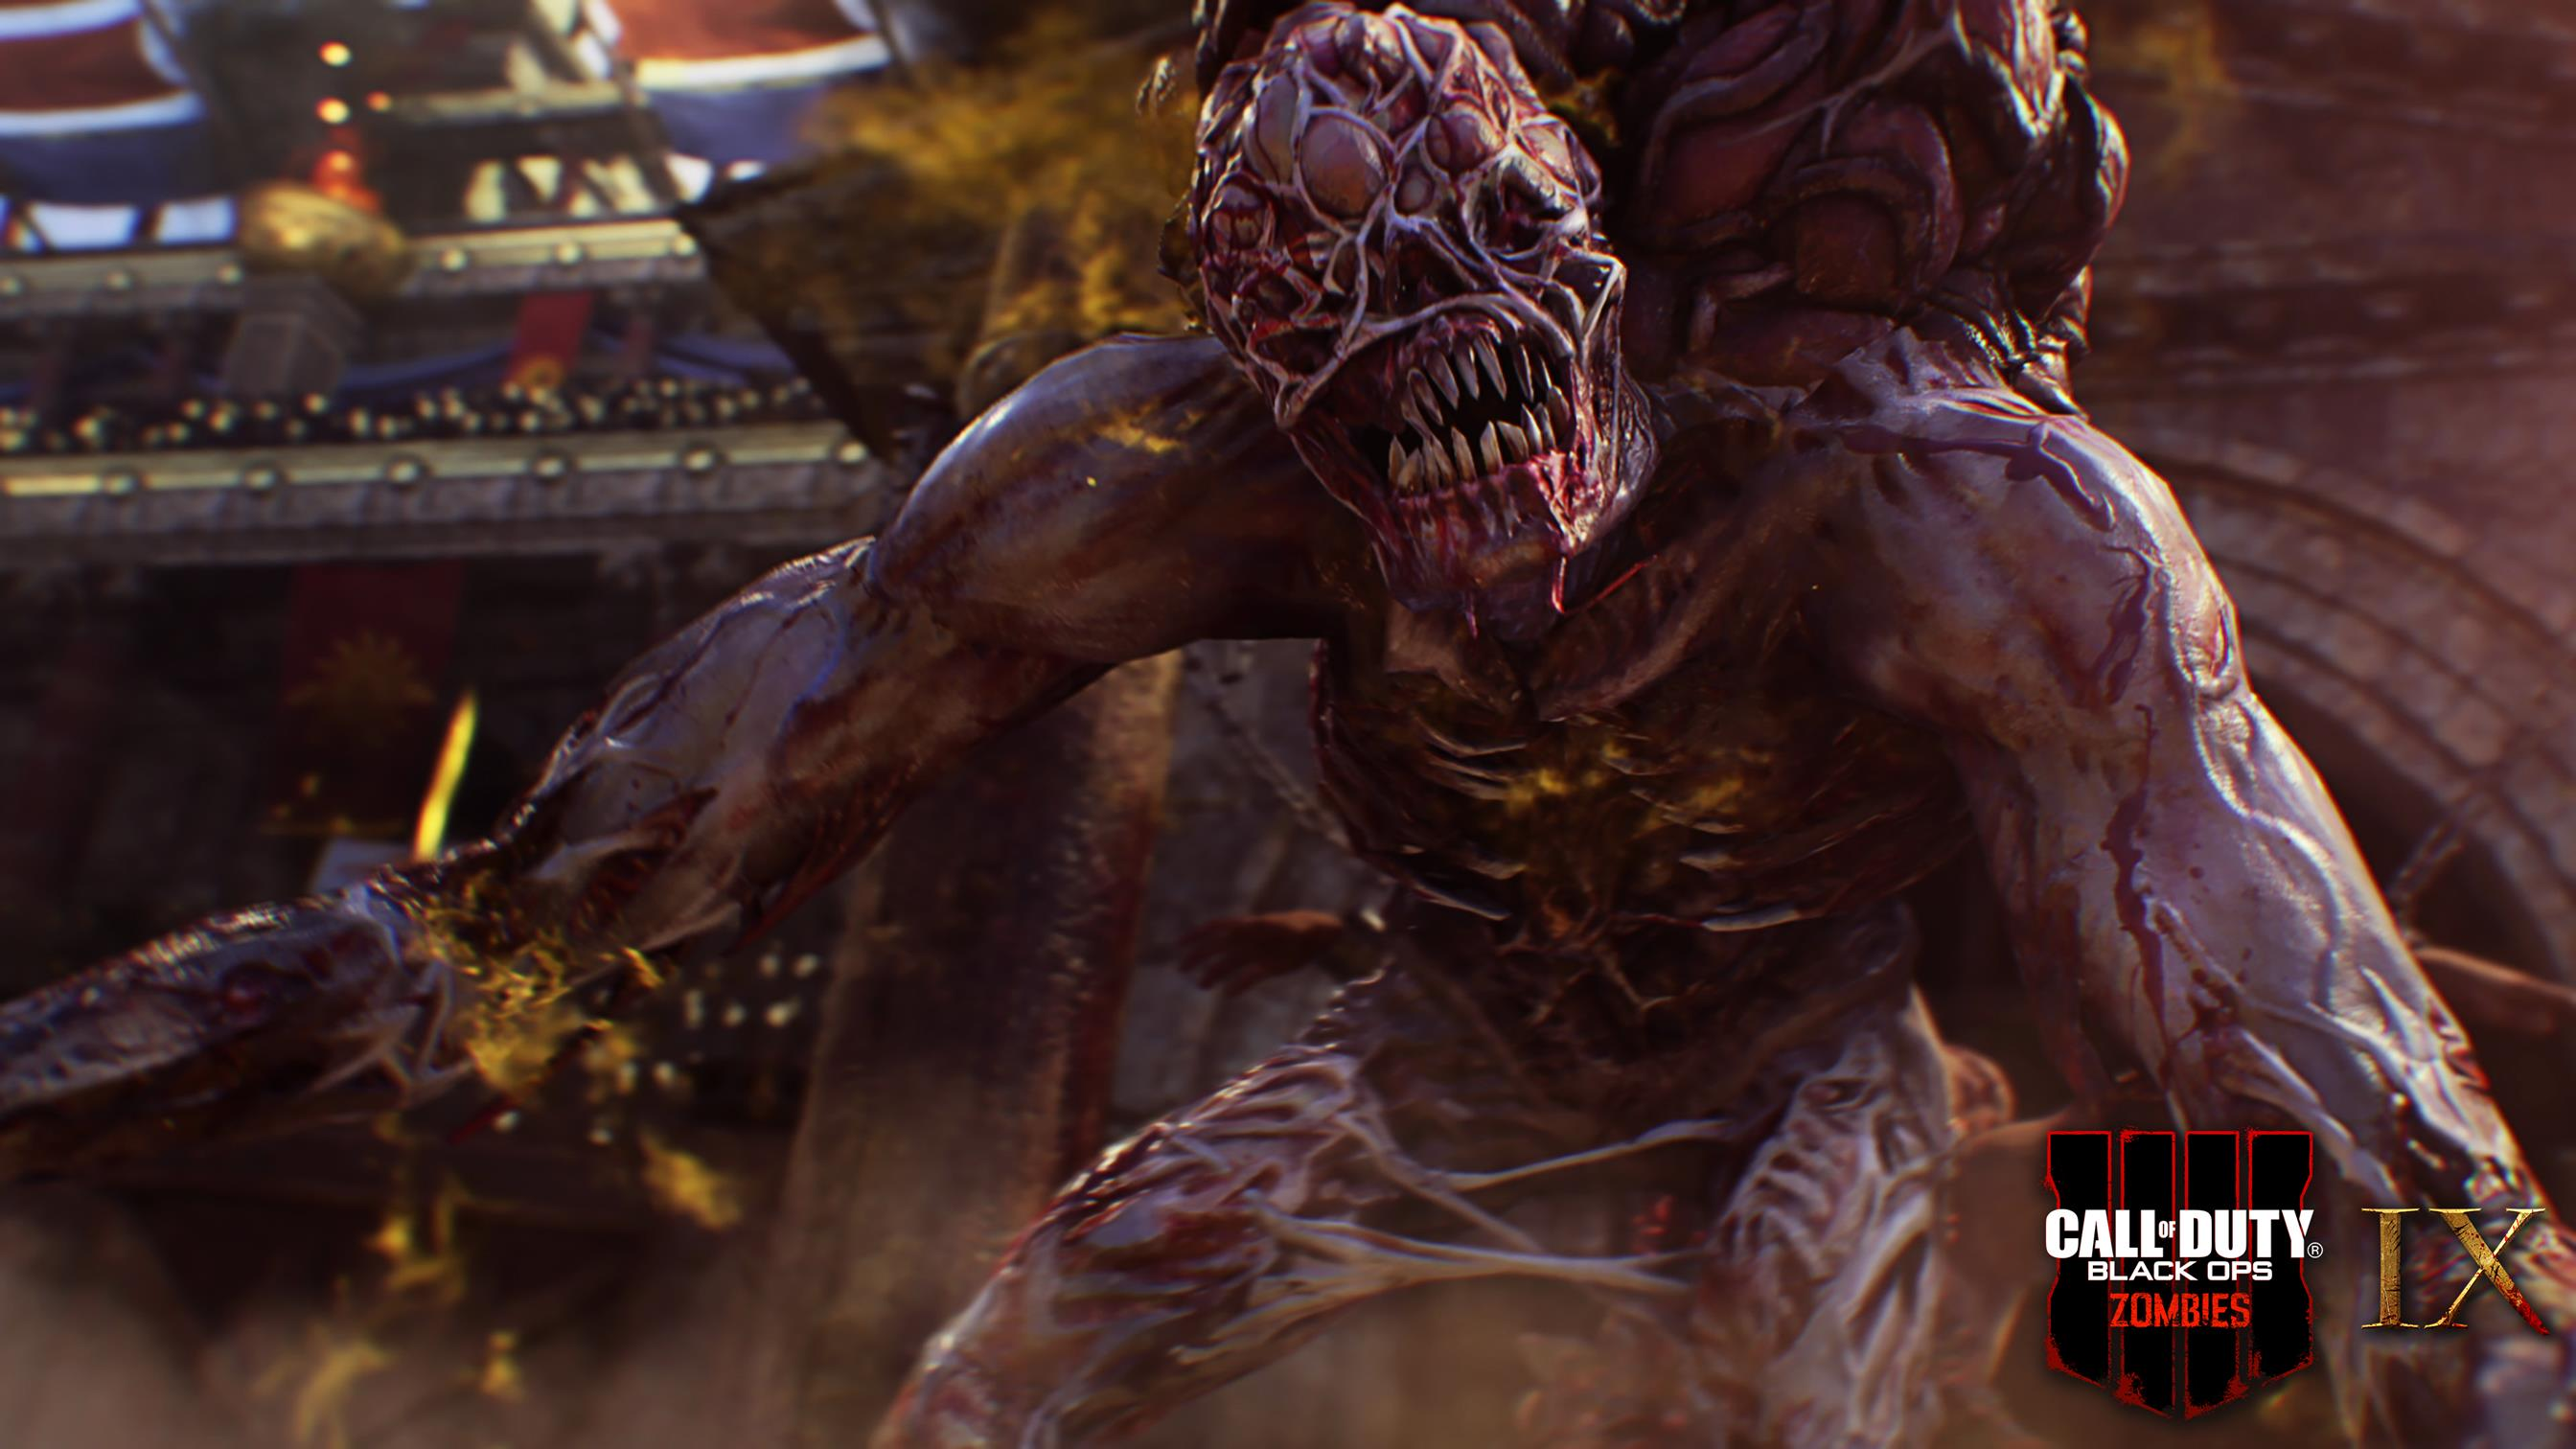 Black Ops 4: Blackout Zombie locations and loot guide - VG247